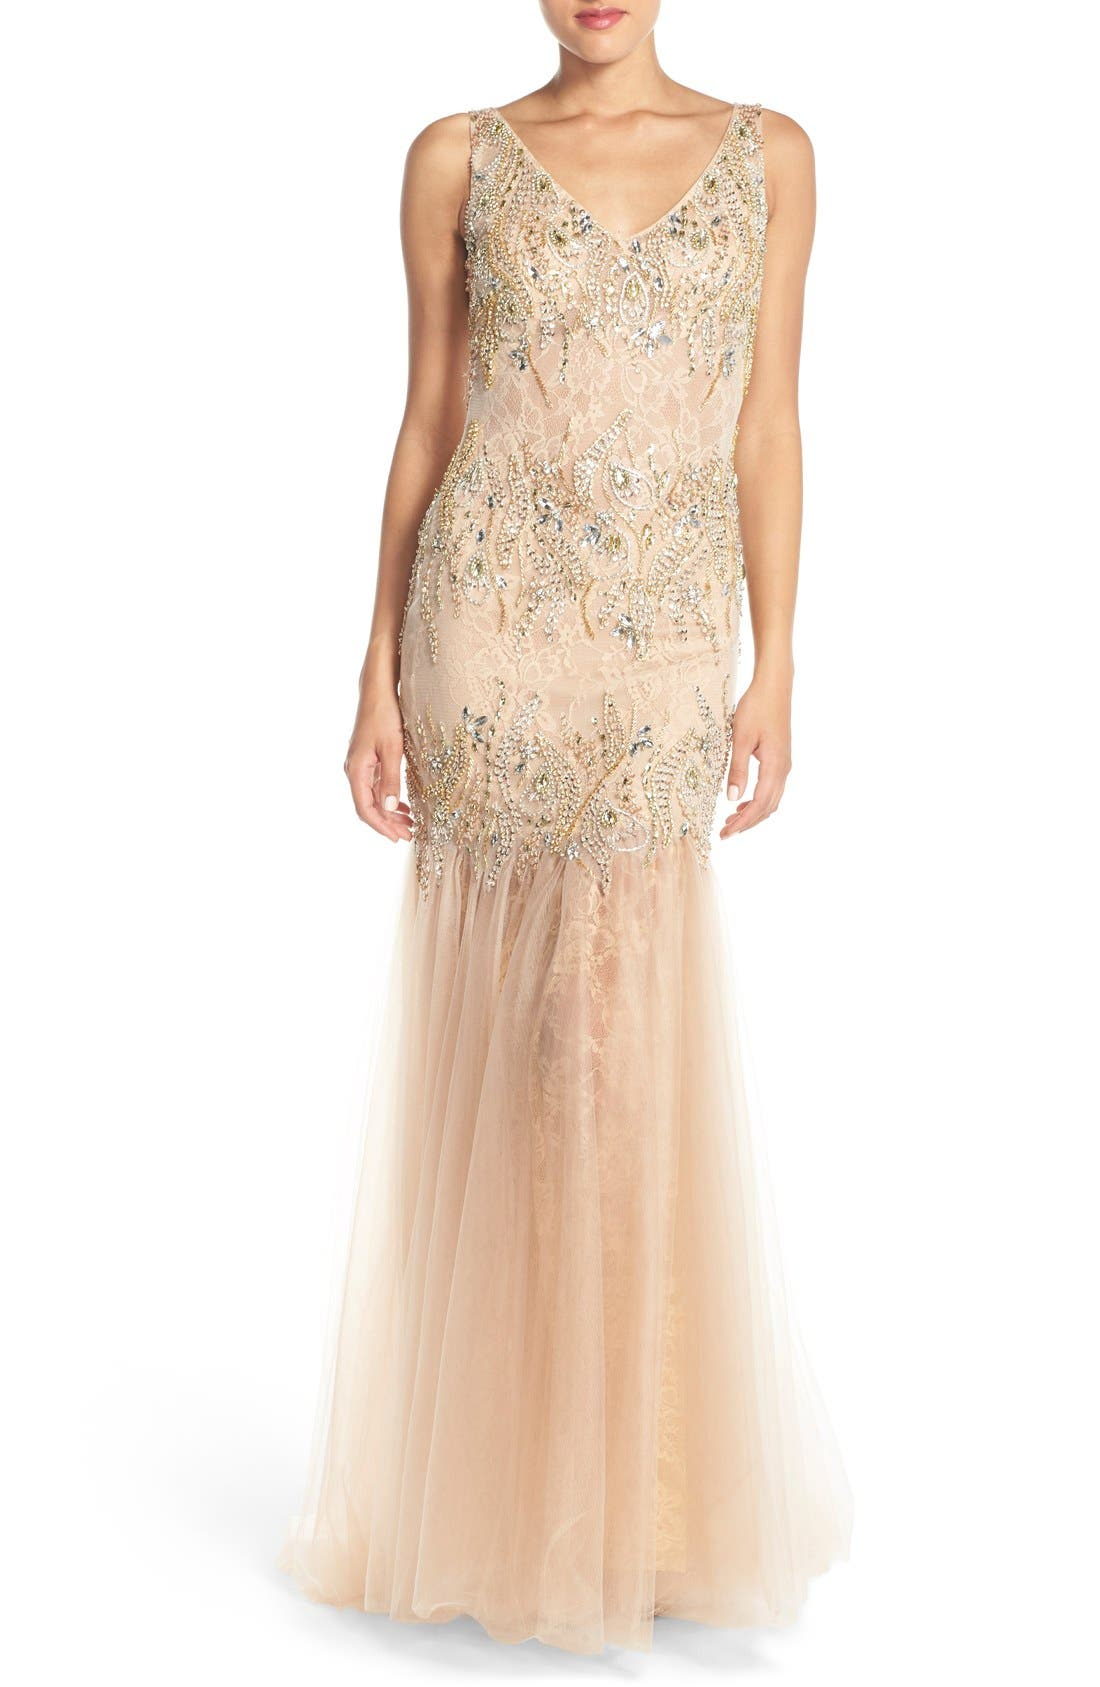 Main Image - Terani Couture Embellished Lace Mermaid Gown